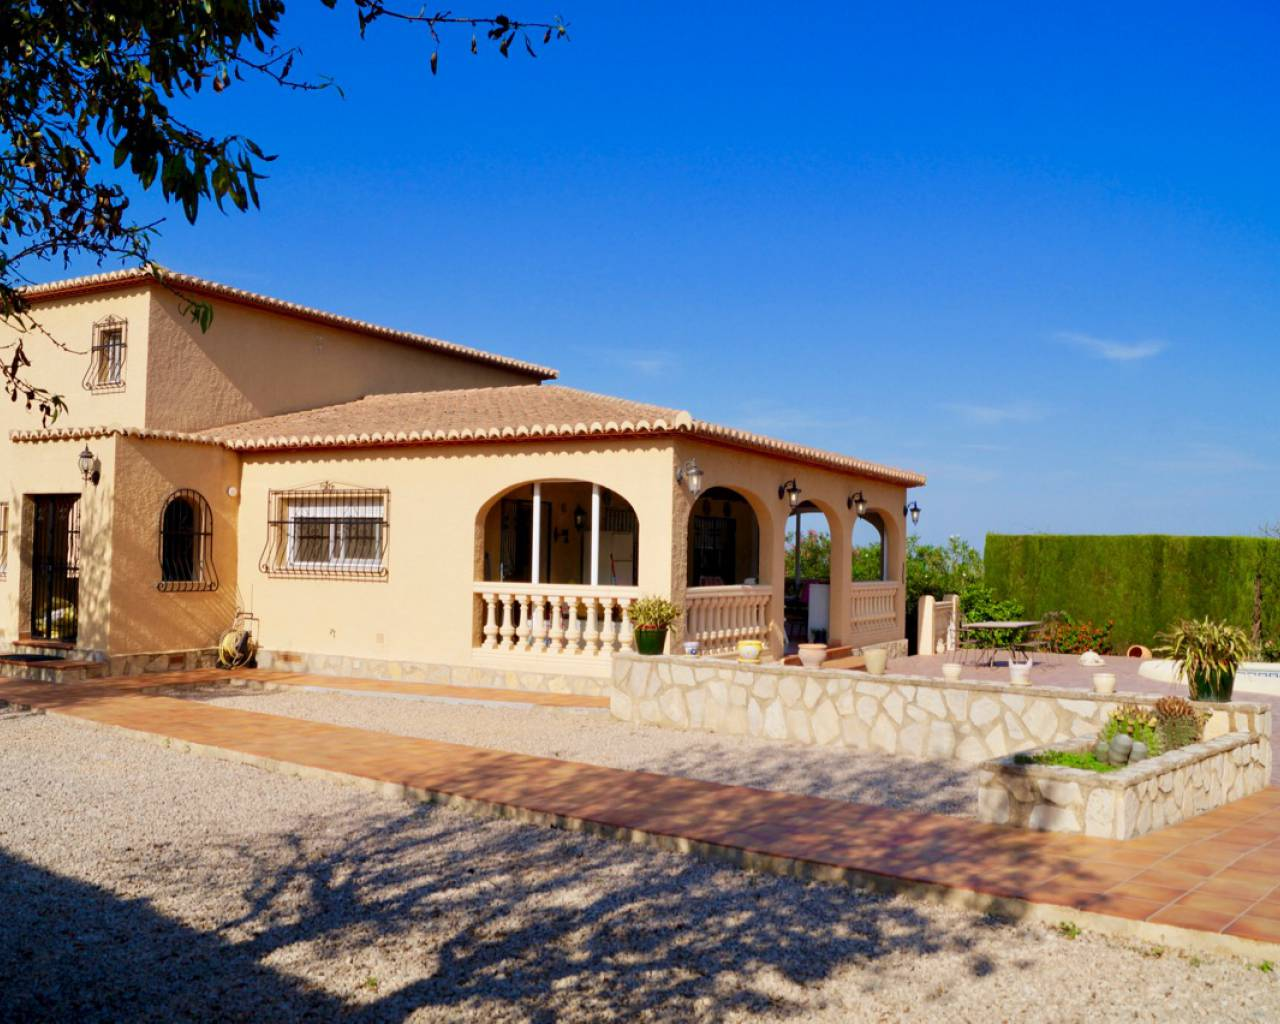 Sale - Country House / Finca - Benidoleig